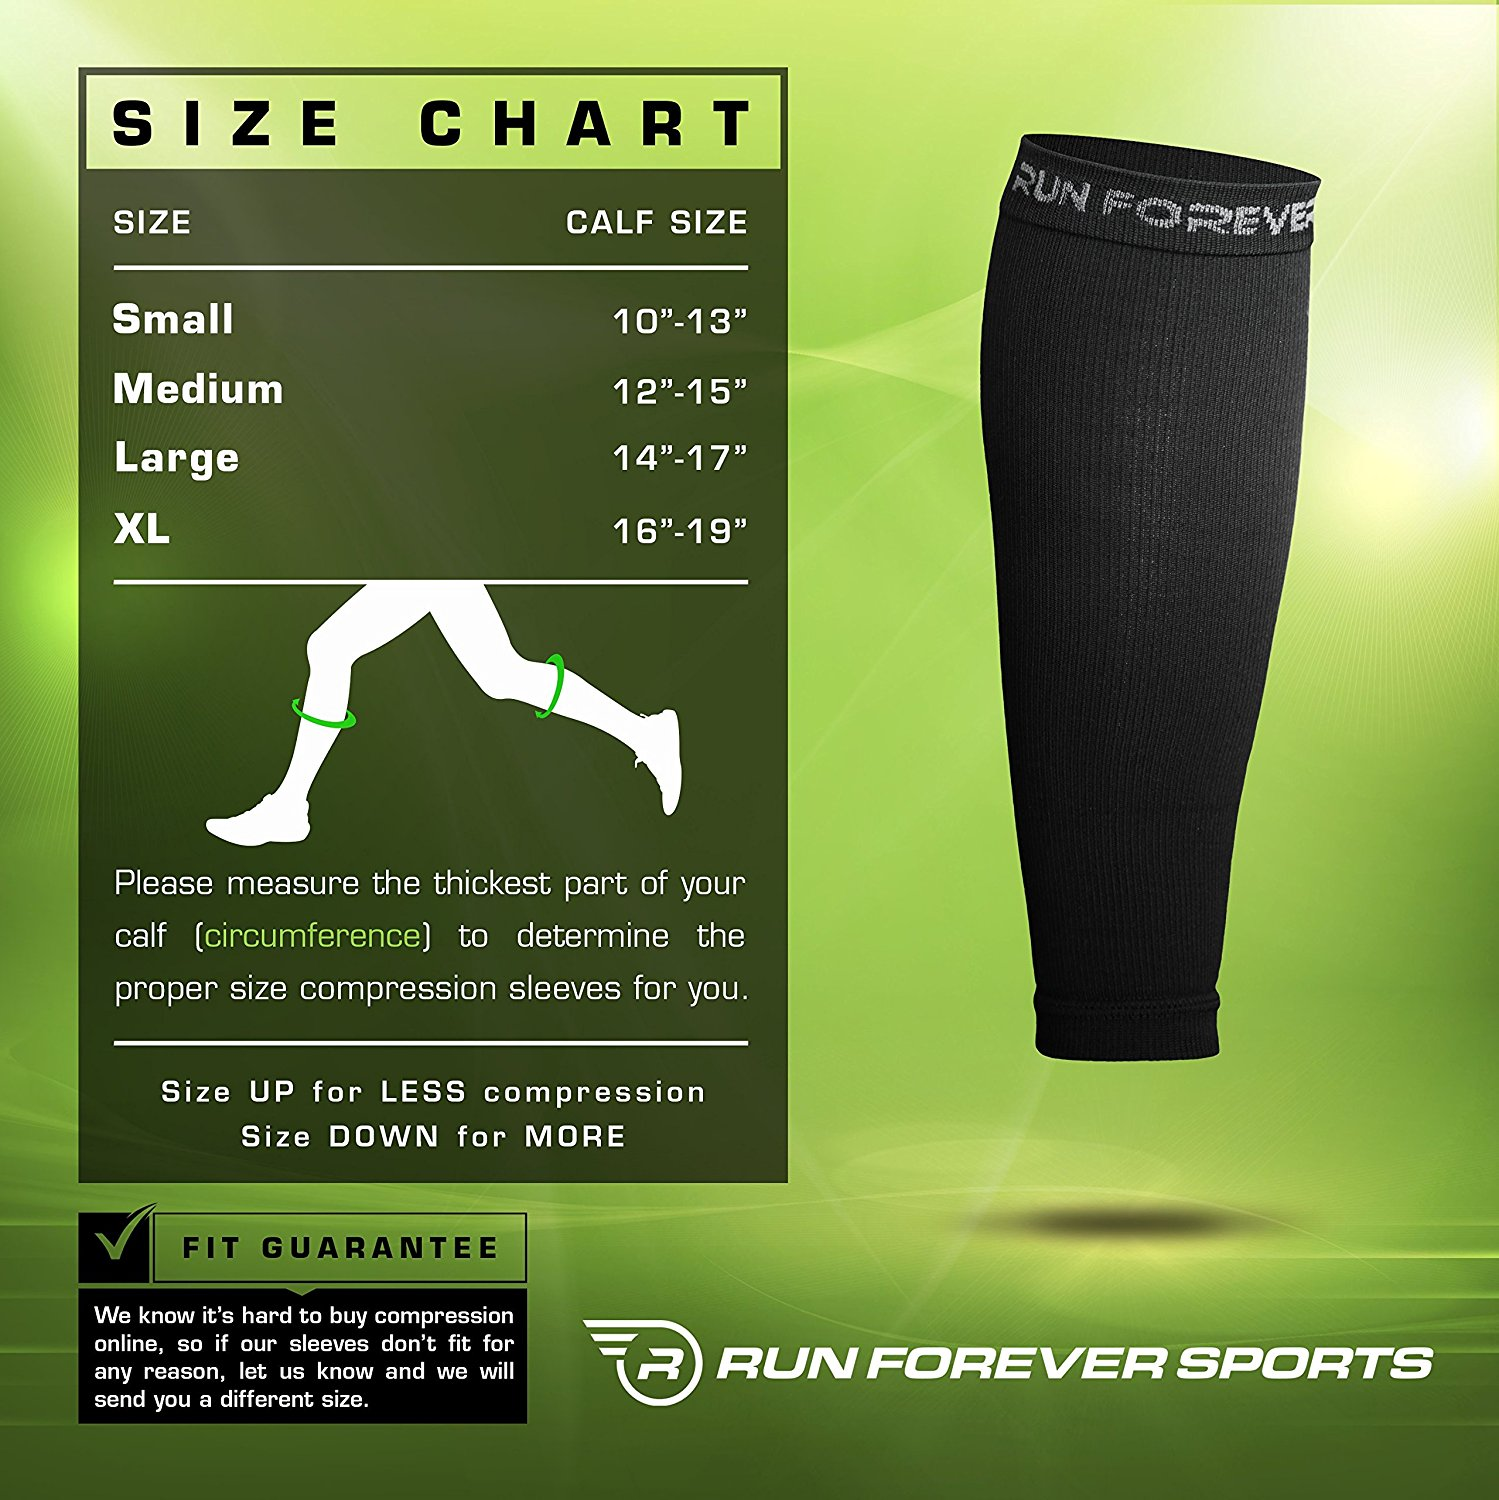 Run Forever Sports Calf Compression Sleeve